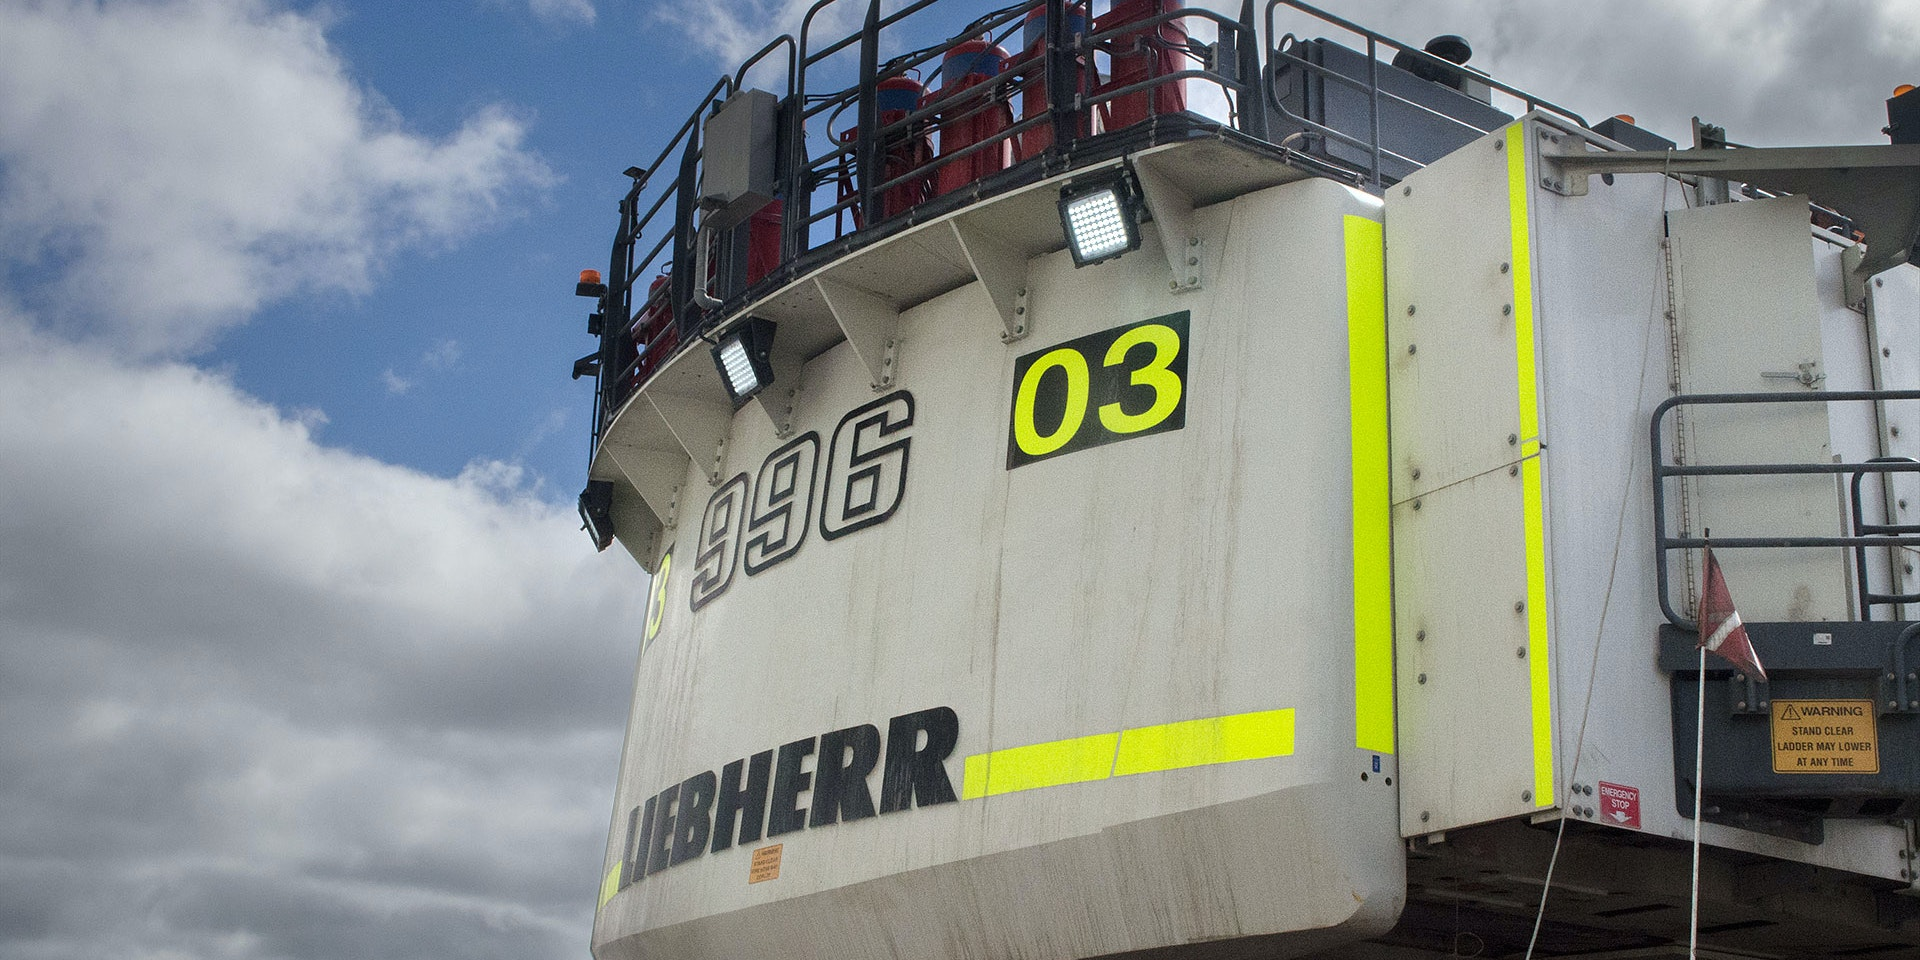 CP56 LED Flood Light in application, installed on a 996 liebherr excavator on an industrial / mine site